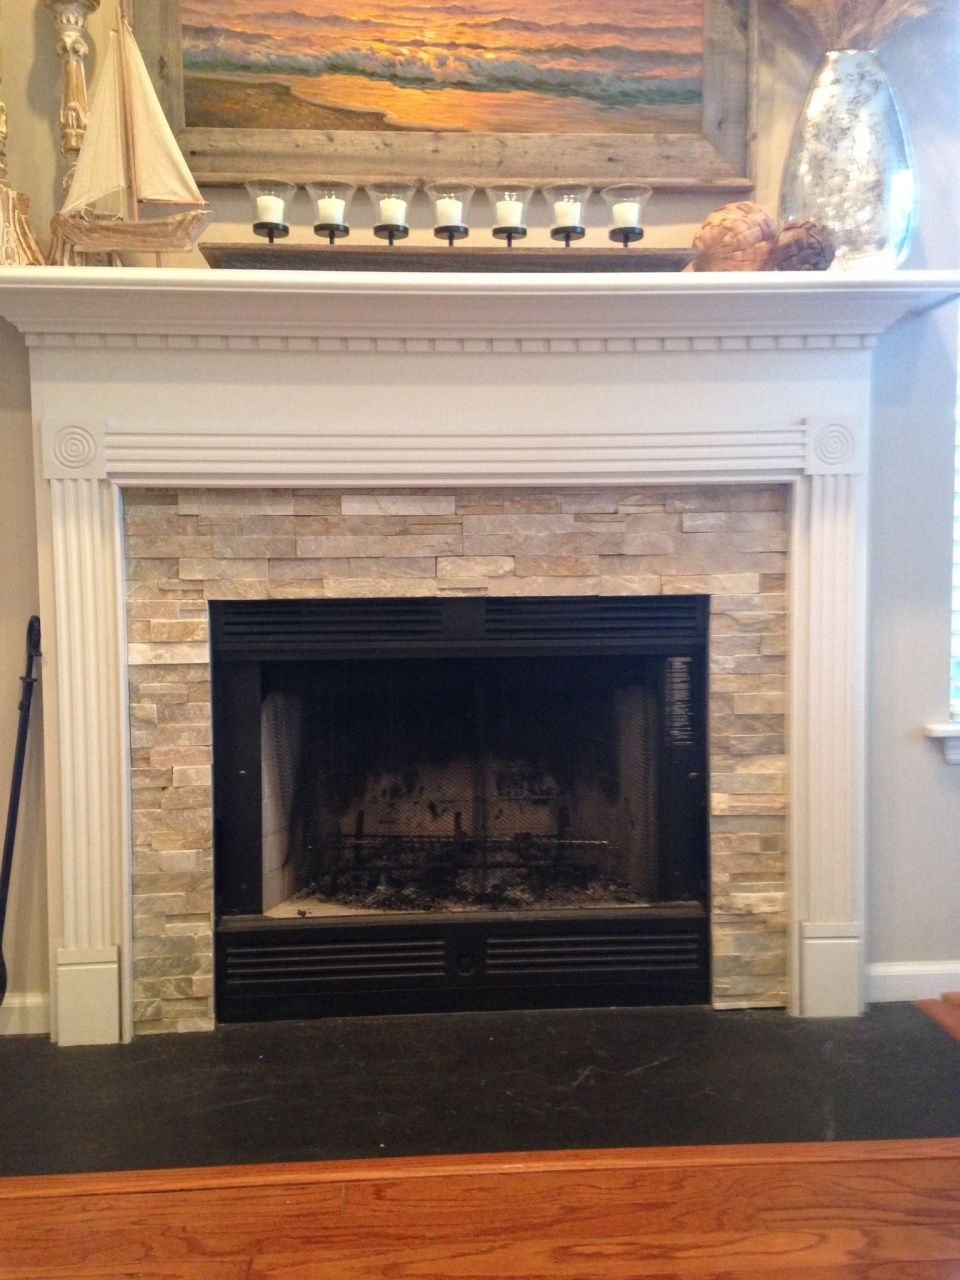 Fireplace Hearth Ideas with Tiles or Slate in 2020 (With